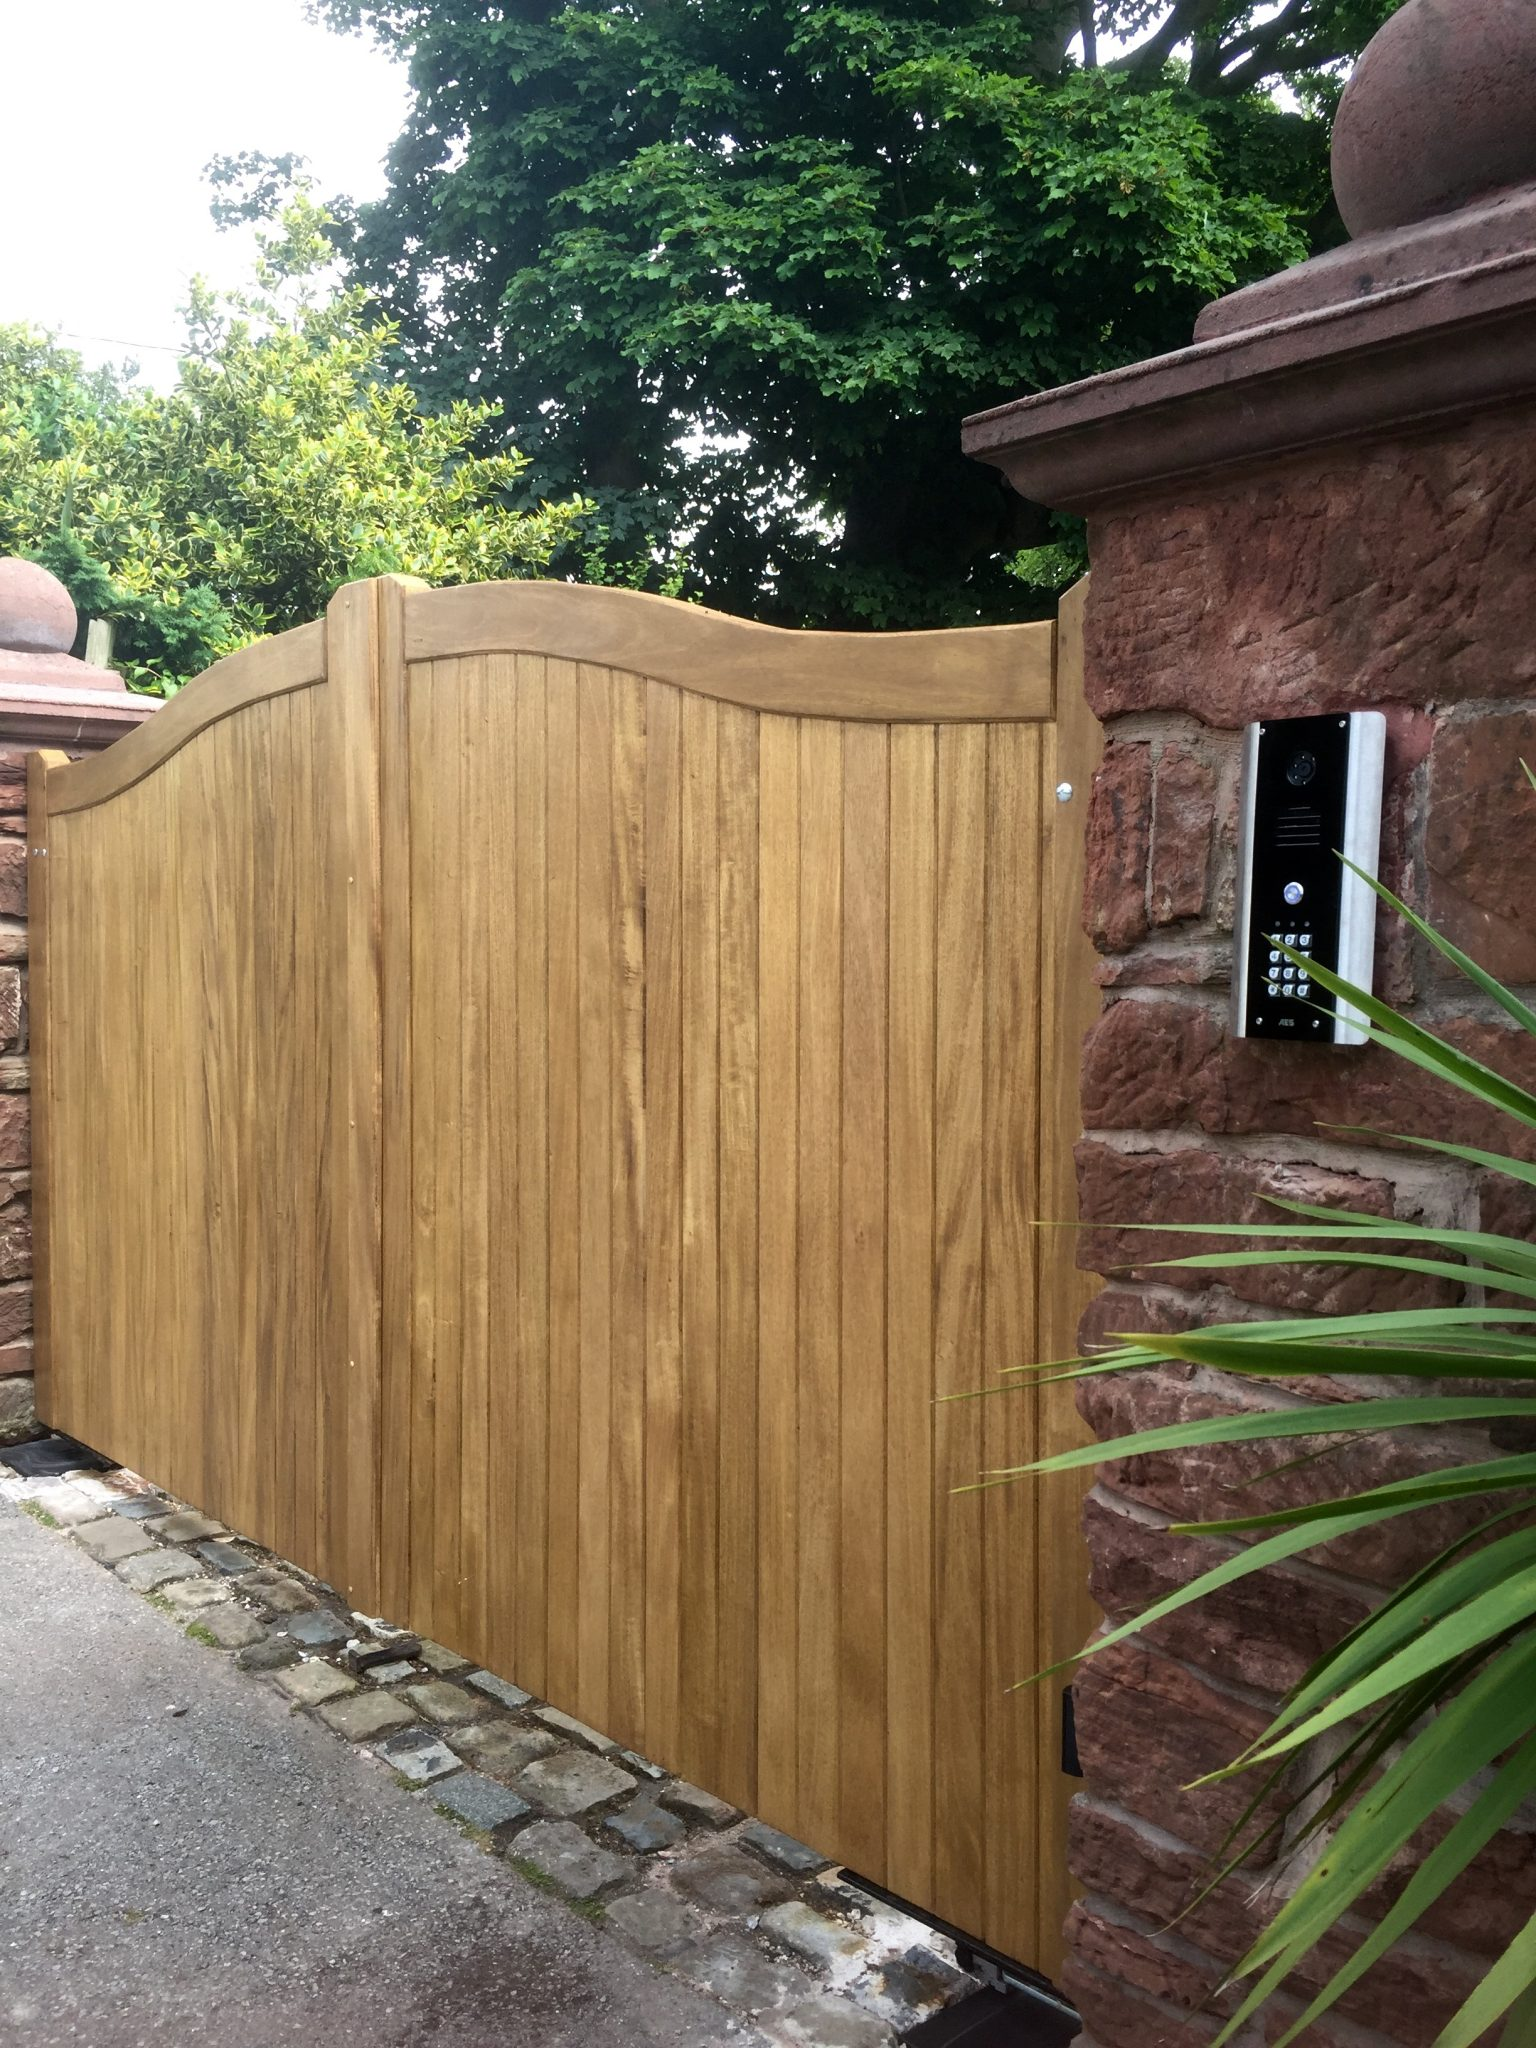 Idigbo swan neck driveway gates in mid oak finish